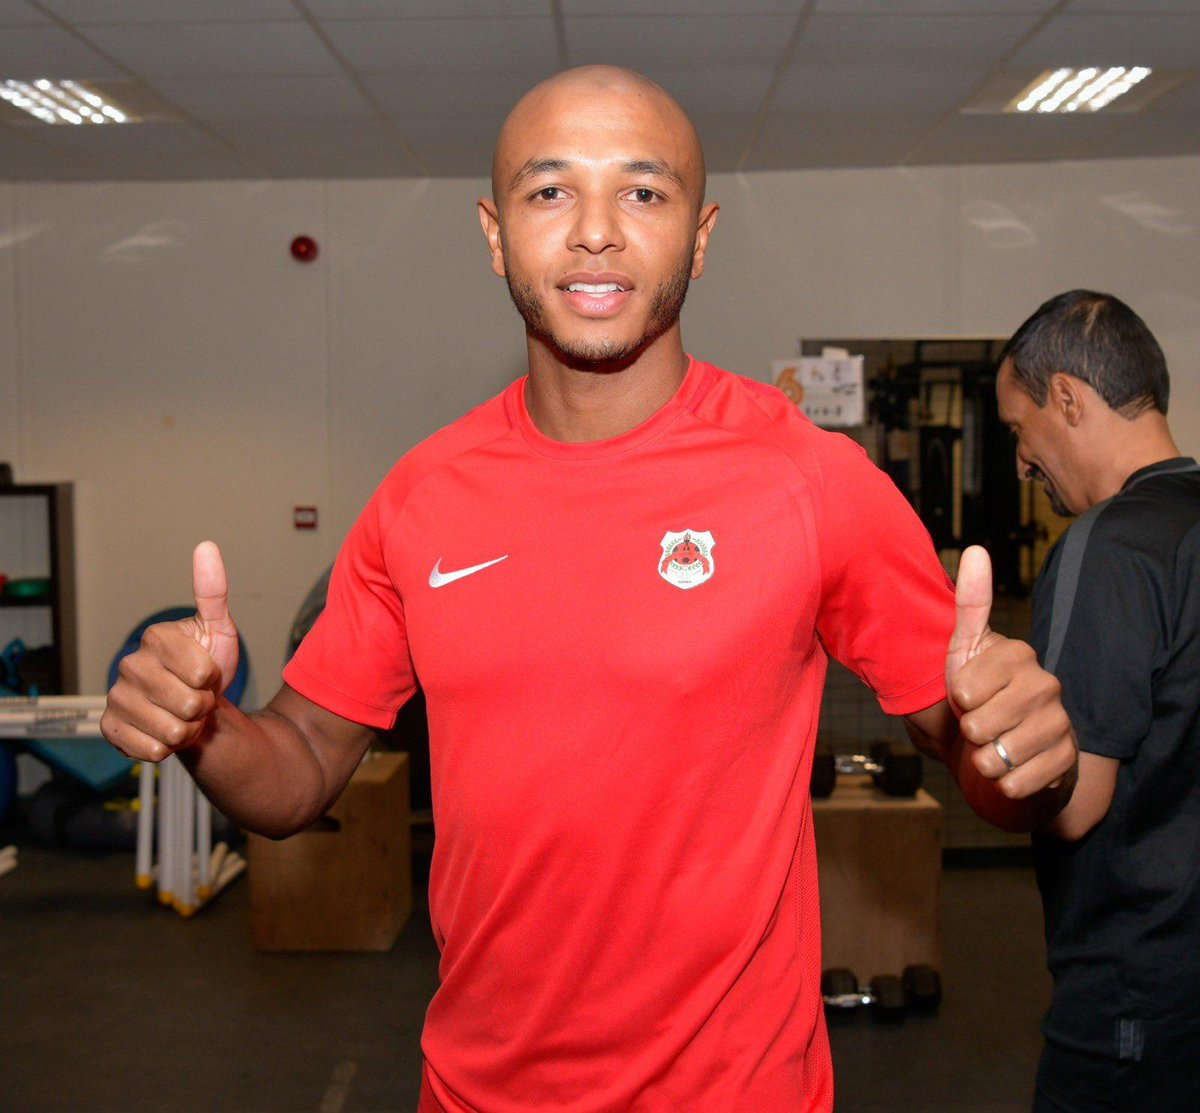 Yacine Brahimi started training with his new club Al-Rayyan yesterday and got a special welcome from his new teammates, congratulating him on winning #AFCON2019  with Algeria  <br>http://pic.twitter.com/ooIetT1AZx